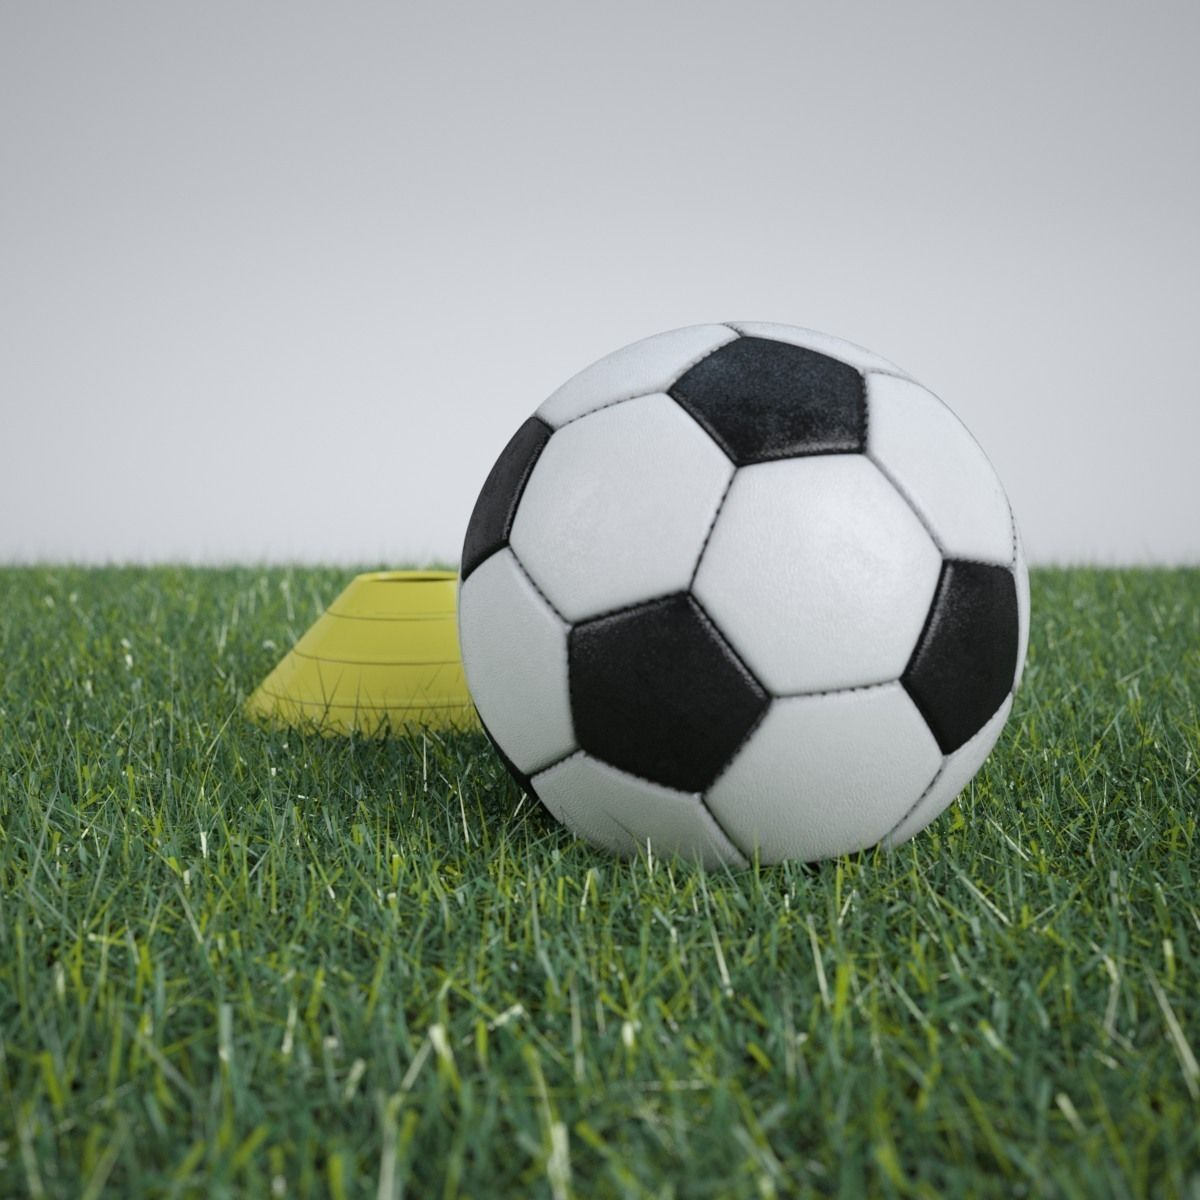 Portable Soccer Goal And Soccer Ball With 3d Model 3d